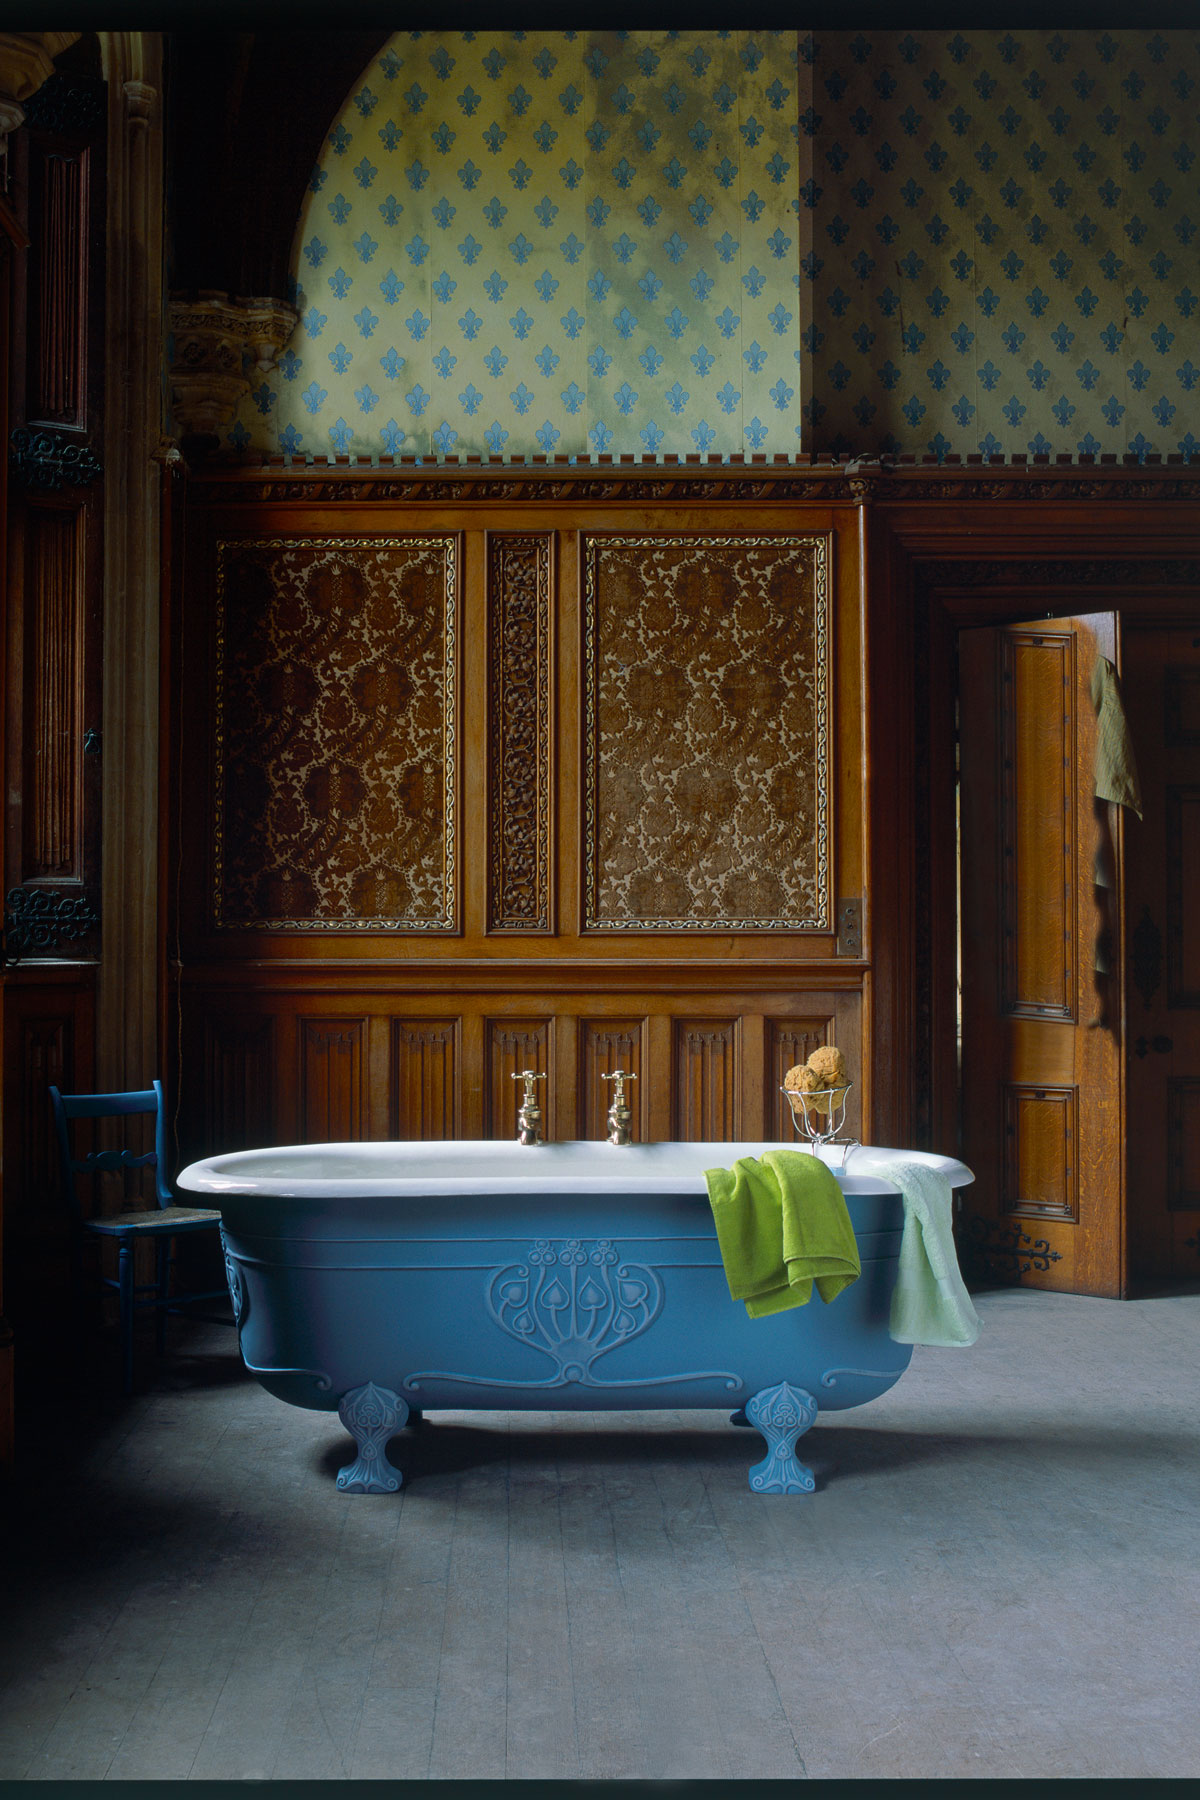 169c8de498 Get the look  This is an antique Art Nouveau castironbath – called the  Doulton – which was restored to order by The Water Monopoly.